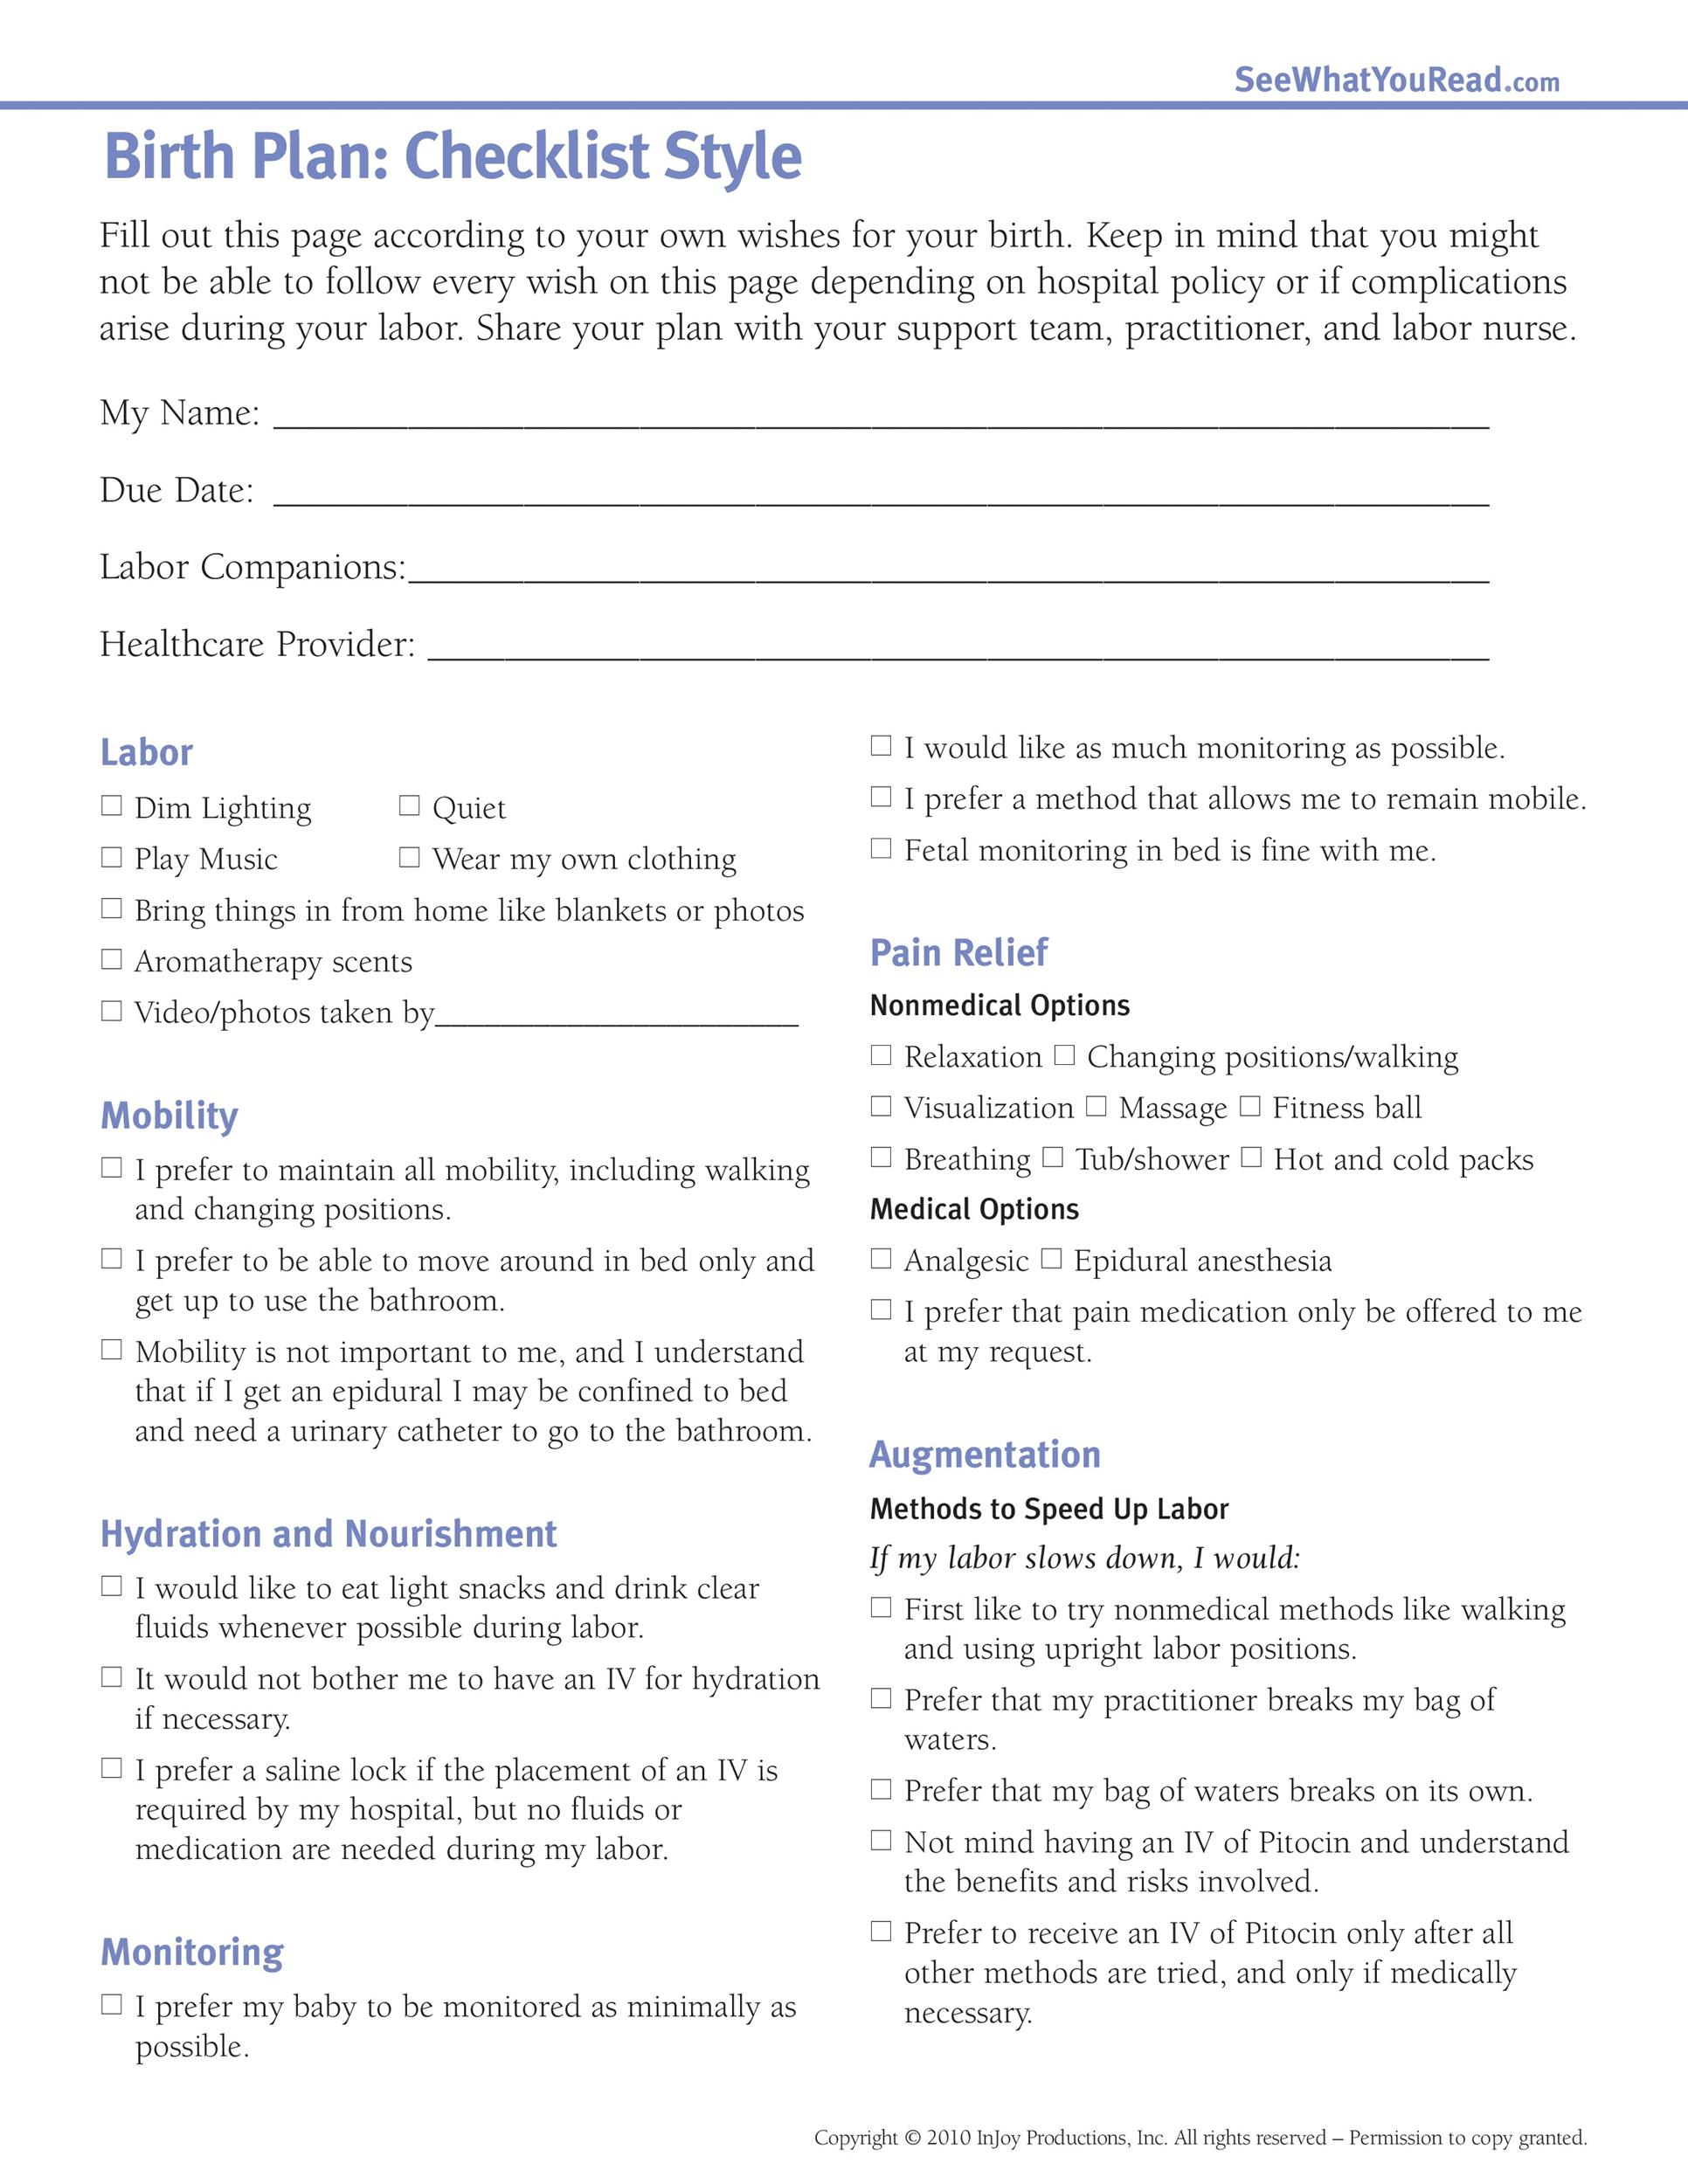 47+ Printable Birth Plan Templates [Birth Plan Checklist